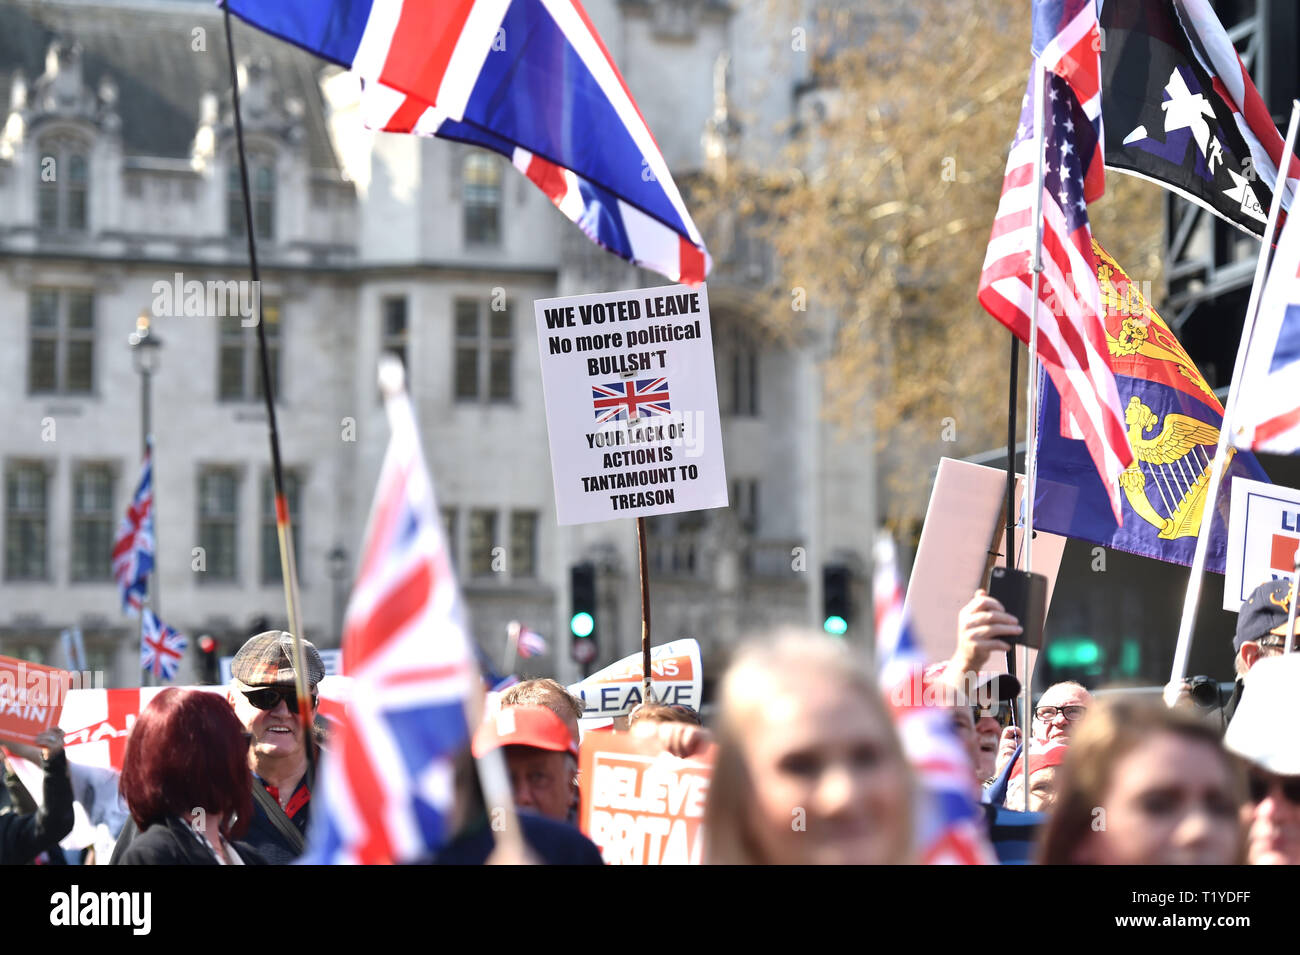 London, UK. 29th Mar, 2019. Pro Brexit supporters block off the streets around Parliament Square London today as they show their anger at not leaving the EU today causing traffic chaos in the city . MP's are sitting today to debate leaving the European Parliament on the day it was originally supposed to happen Credit: Simon Dack/Alamy Live News Stock Photo